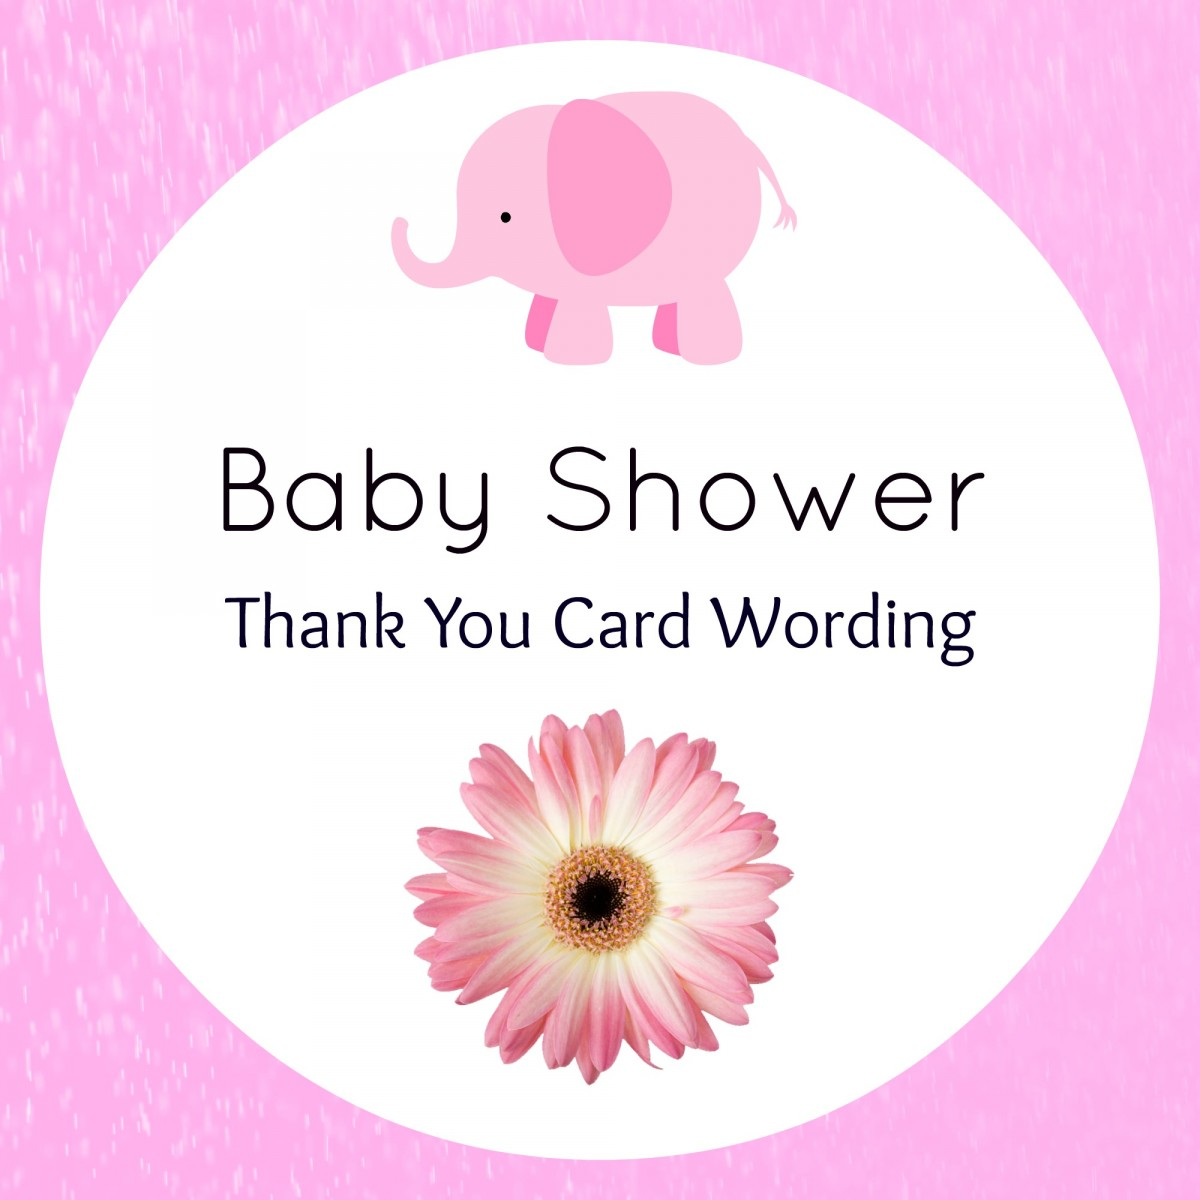 pin baby shower thank you wording thank you cards photo upload view on